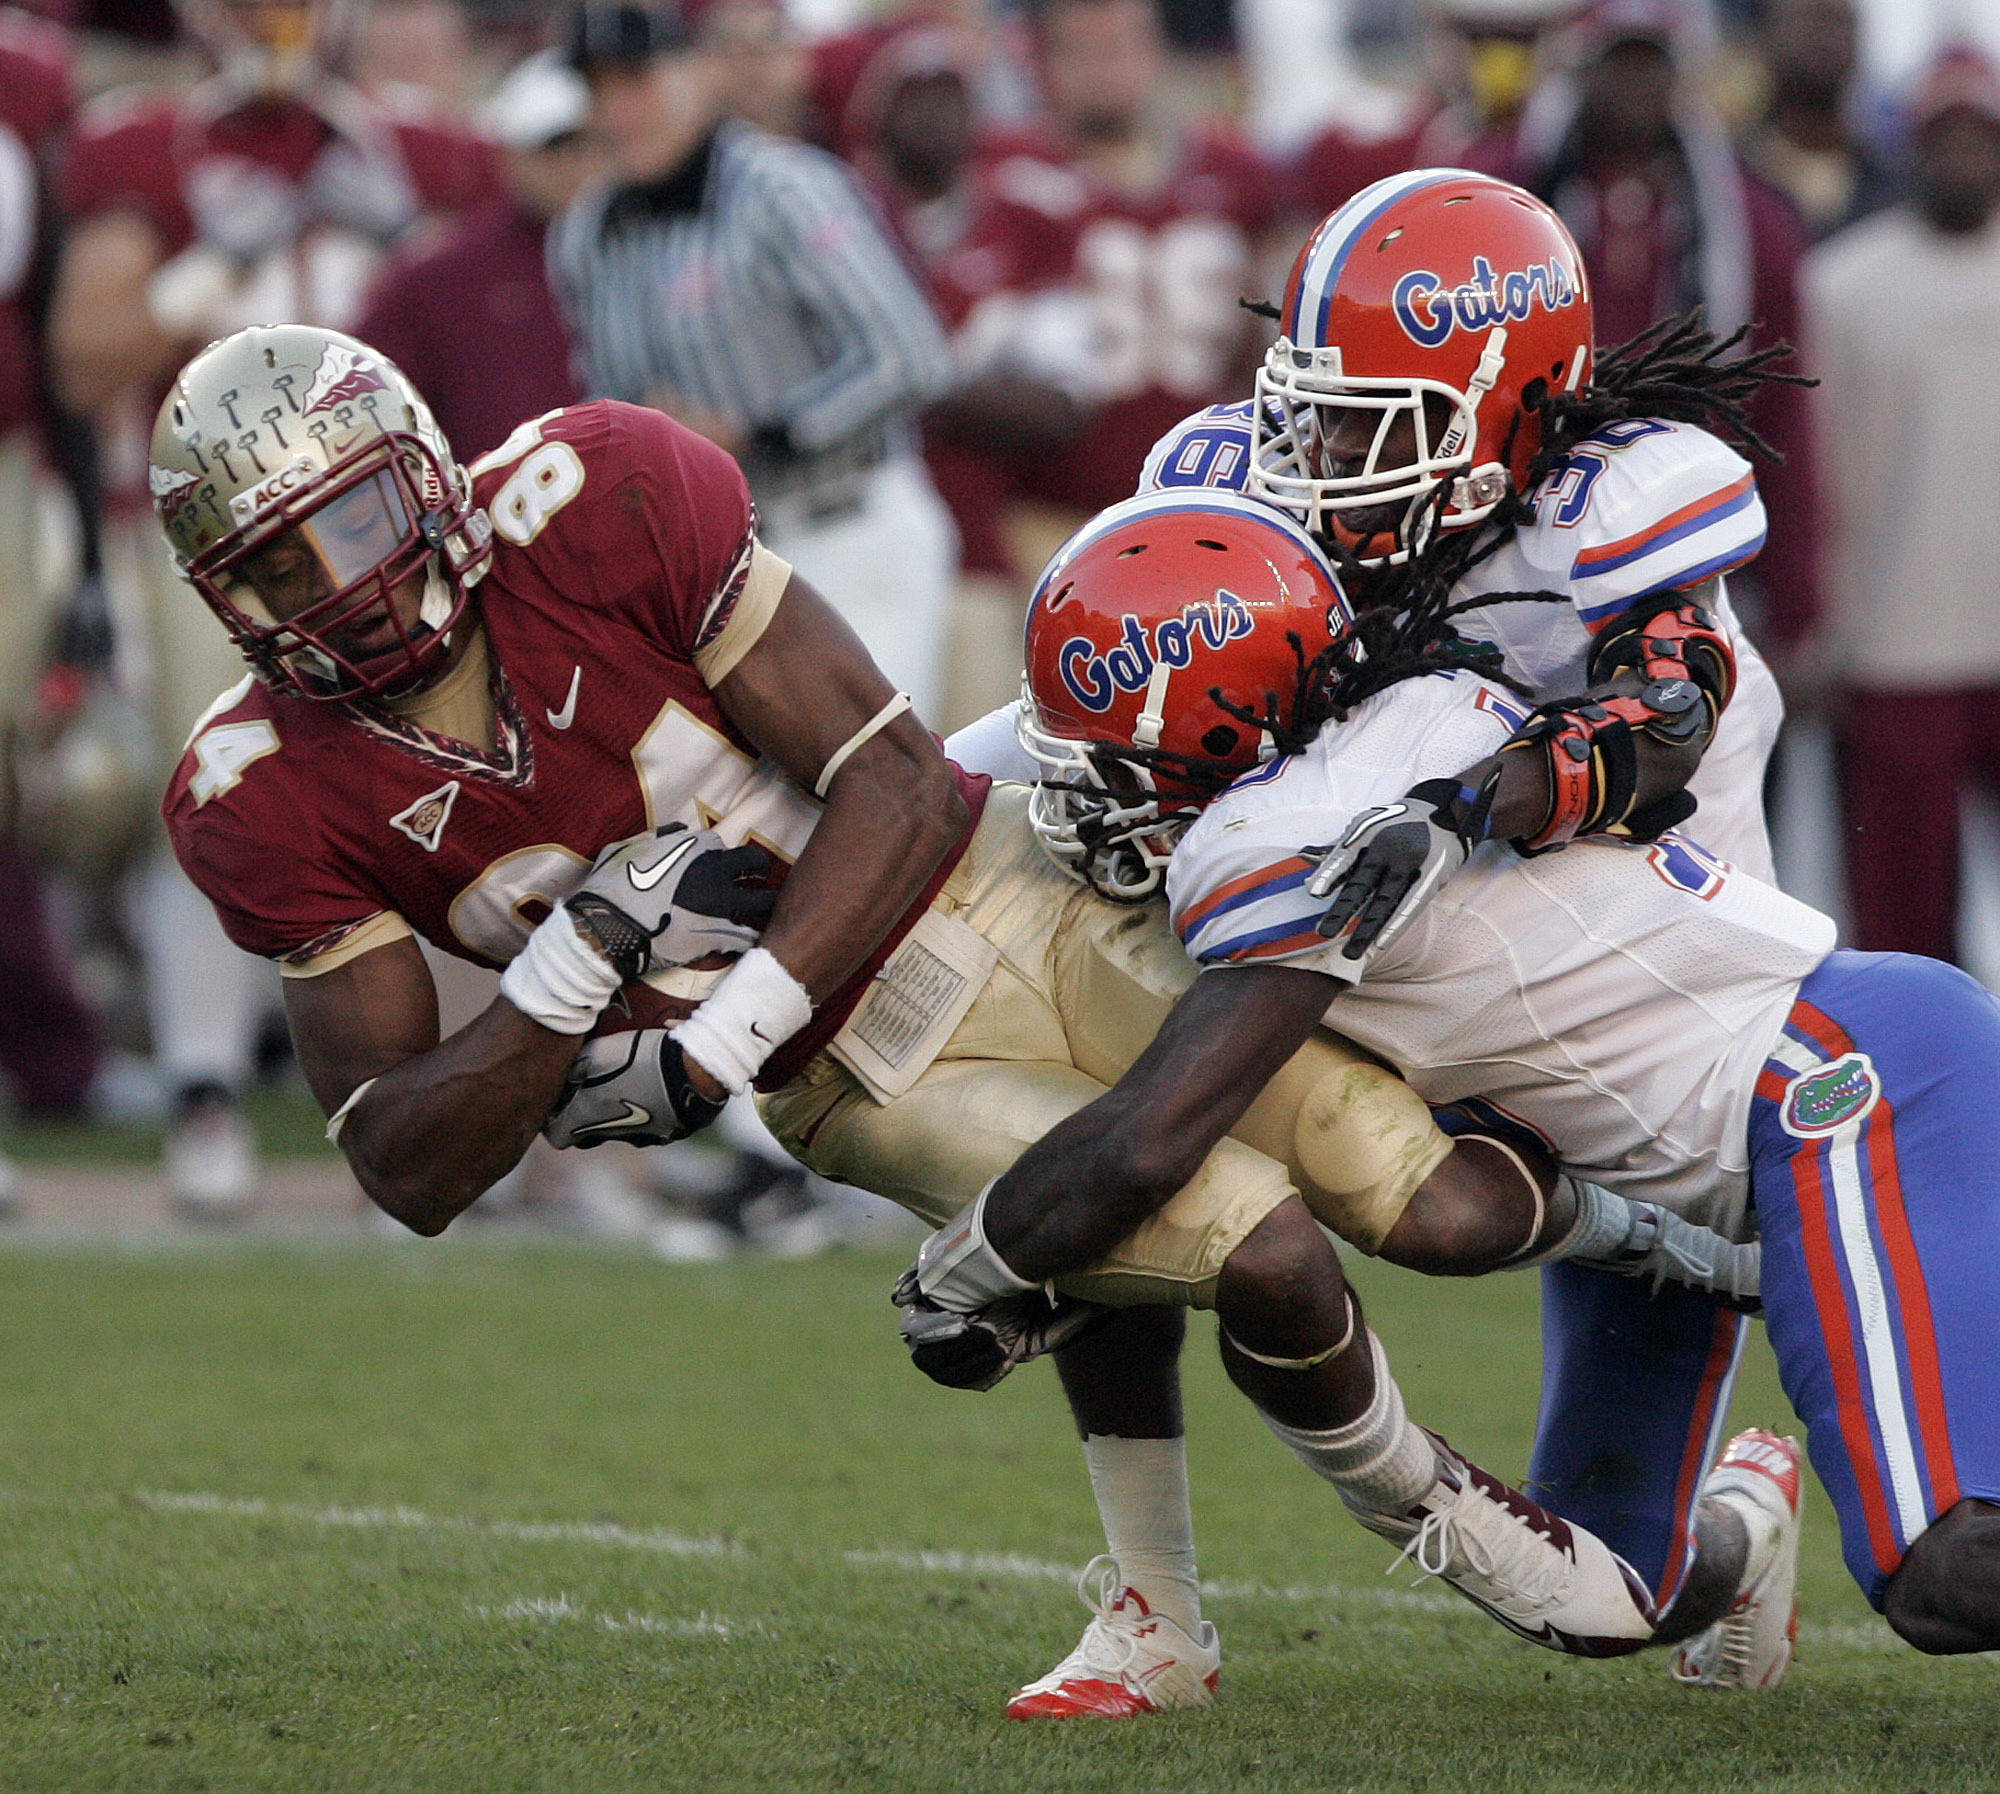 Florida State's Rodney Smith is tackled by Florida's Will Hill and Moses Jenkins, right, after making a reception in the second quarter of an NCAA college football game Saturday, Nov. 27, 2010, in Tallahassee, Fla.(AP Photo/Steve Cannon)